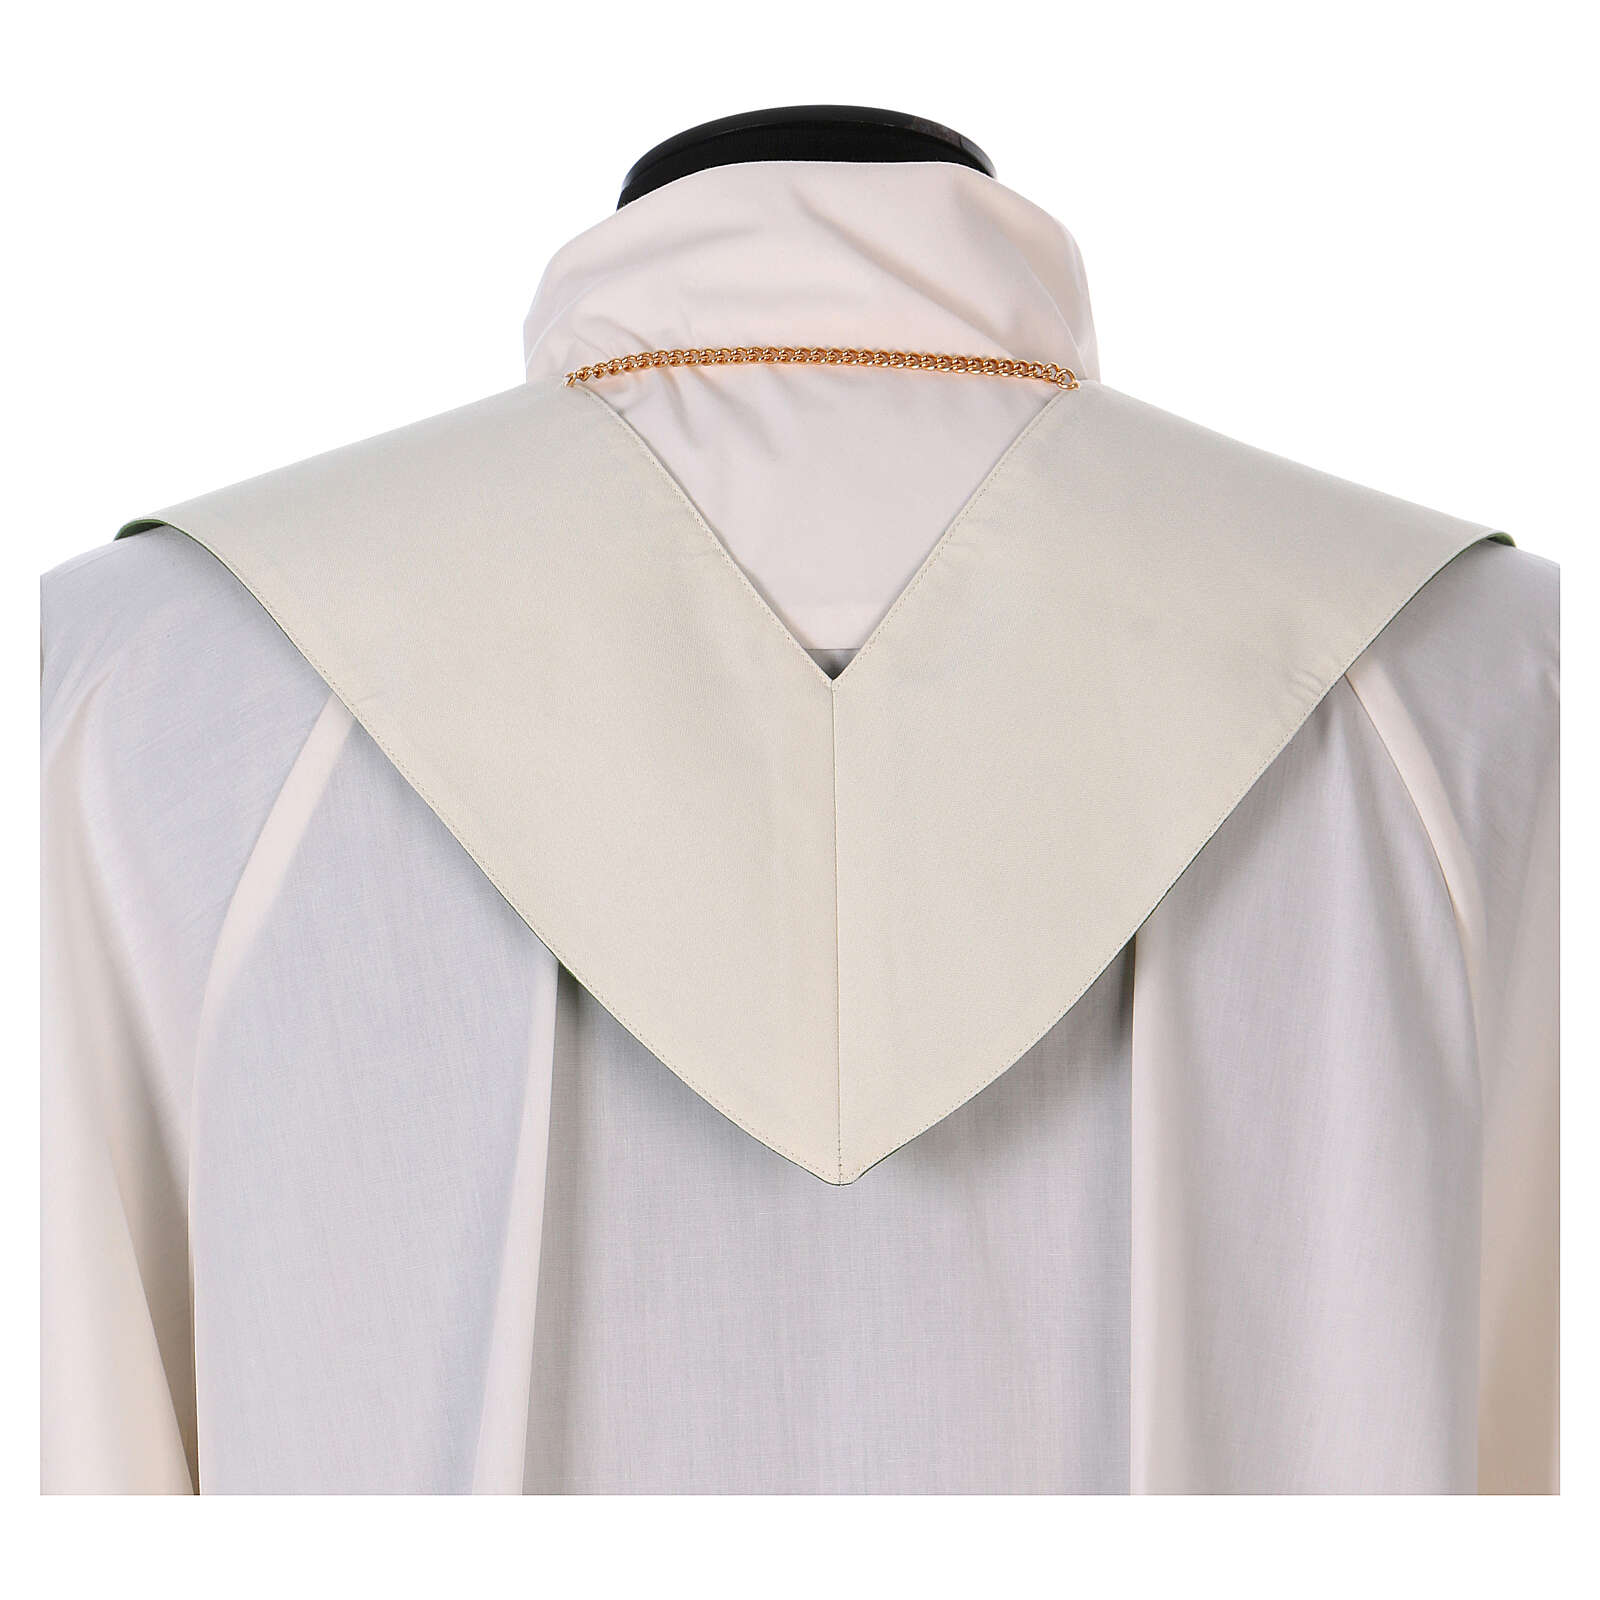 Reversible stole with XP Alpha Omega 100% polyester 4